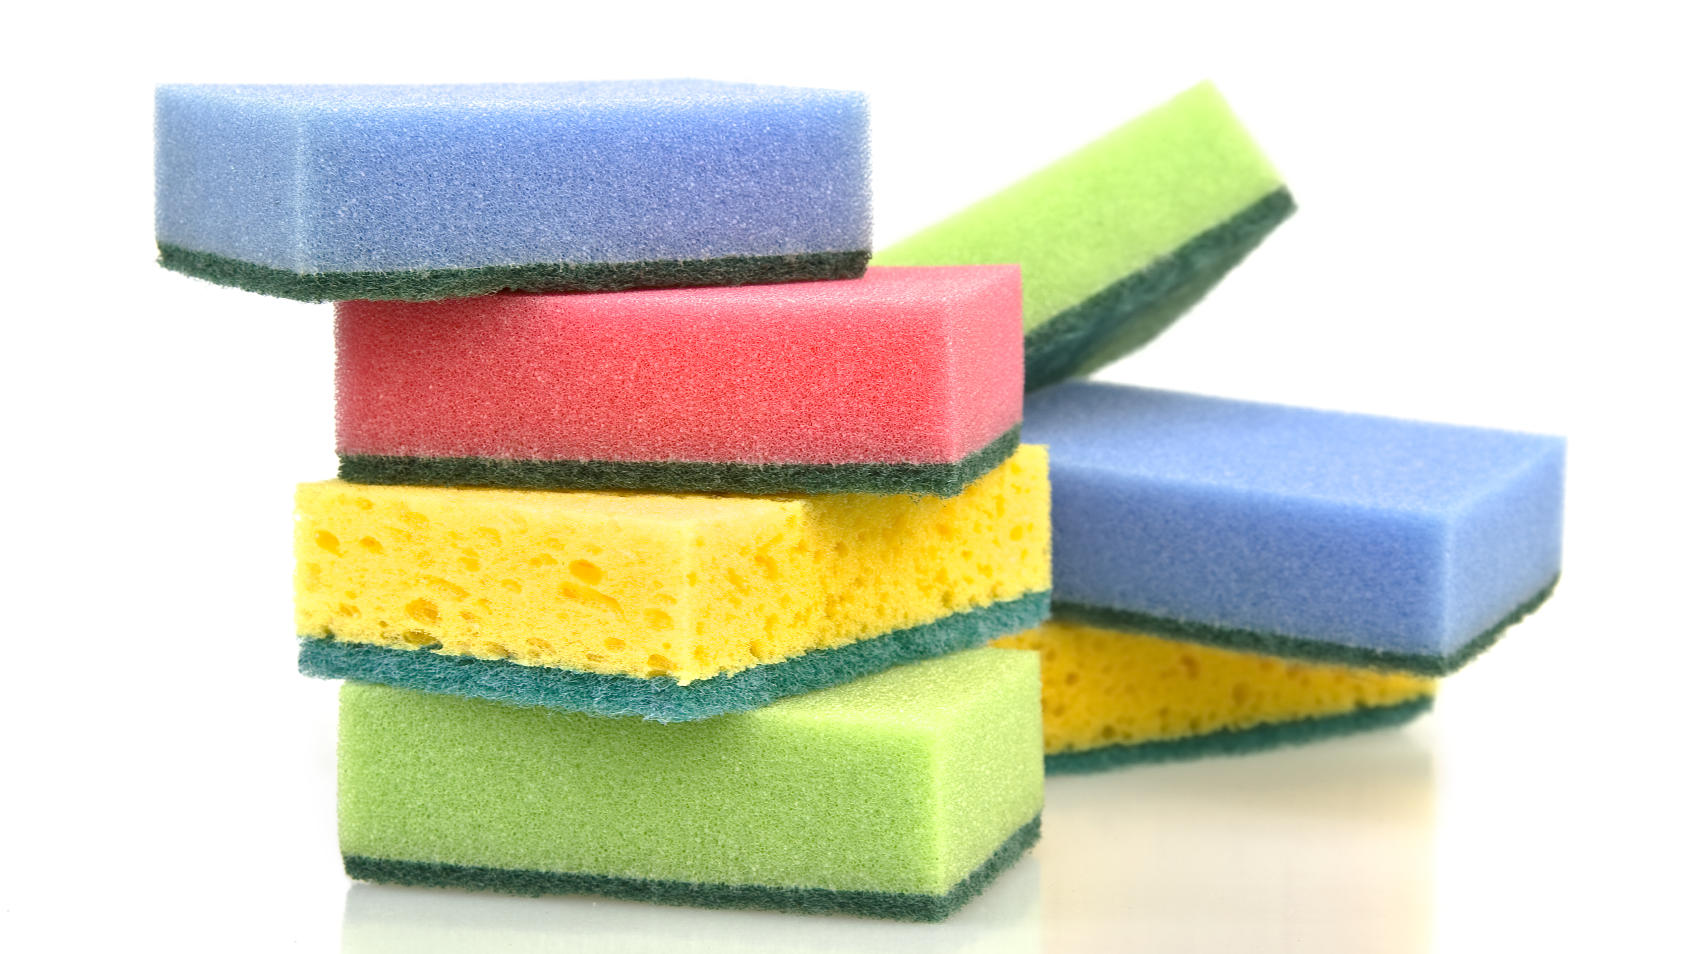 Seriously, you need to wash your sponges.